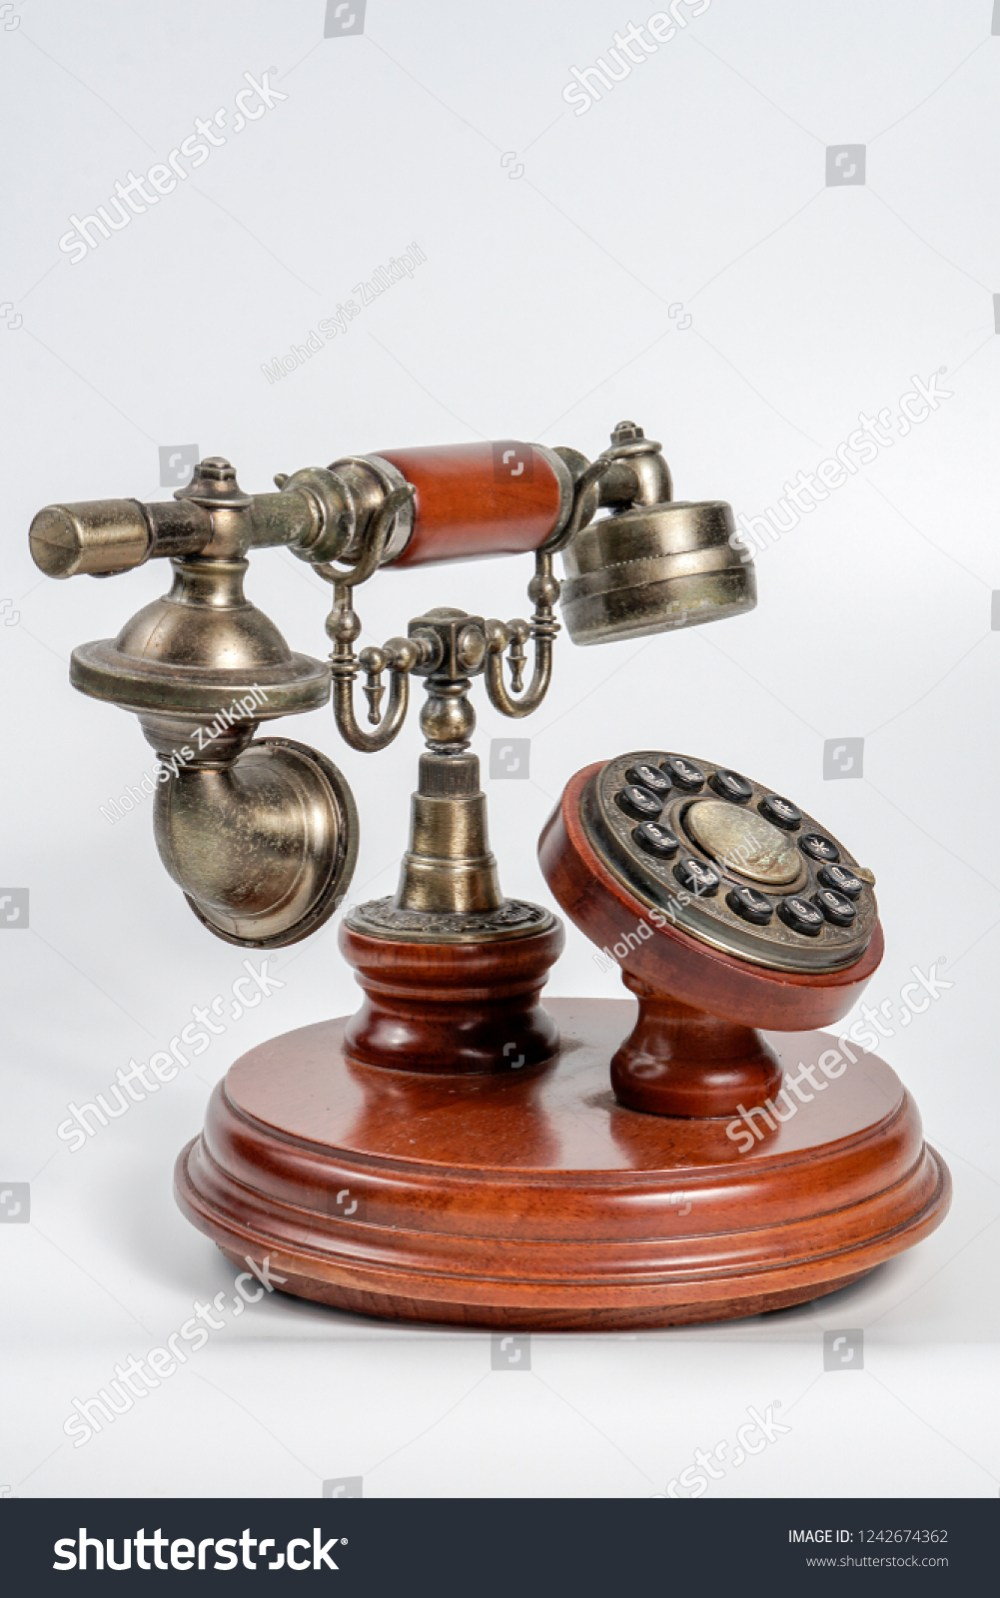 medium resolution of old antique vintage telephone phone isolated